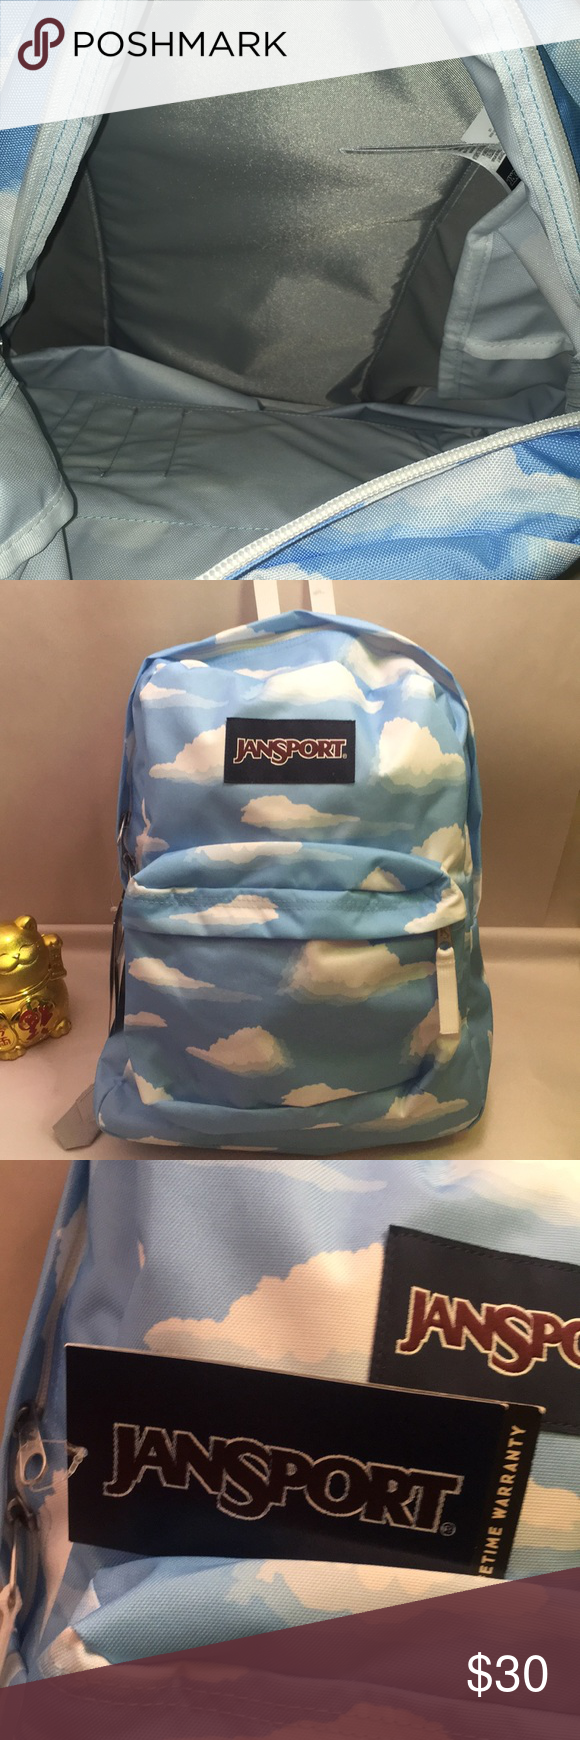 best value 100% satisfaction latest trends of 2019 Jansport Superbreak Backpack This is a brand new authentic ...